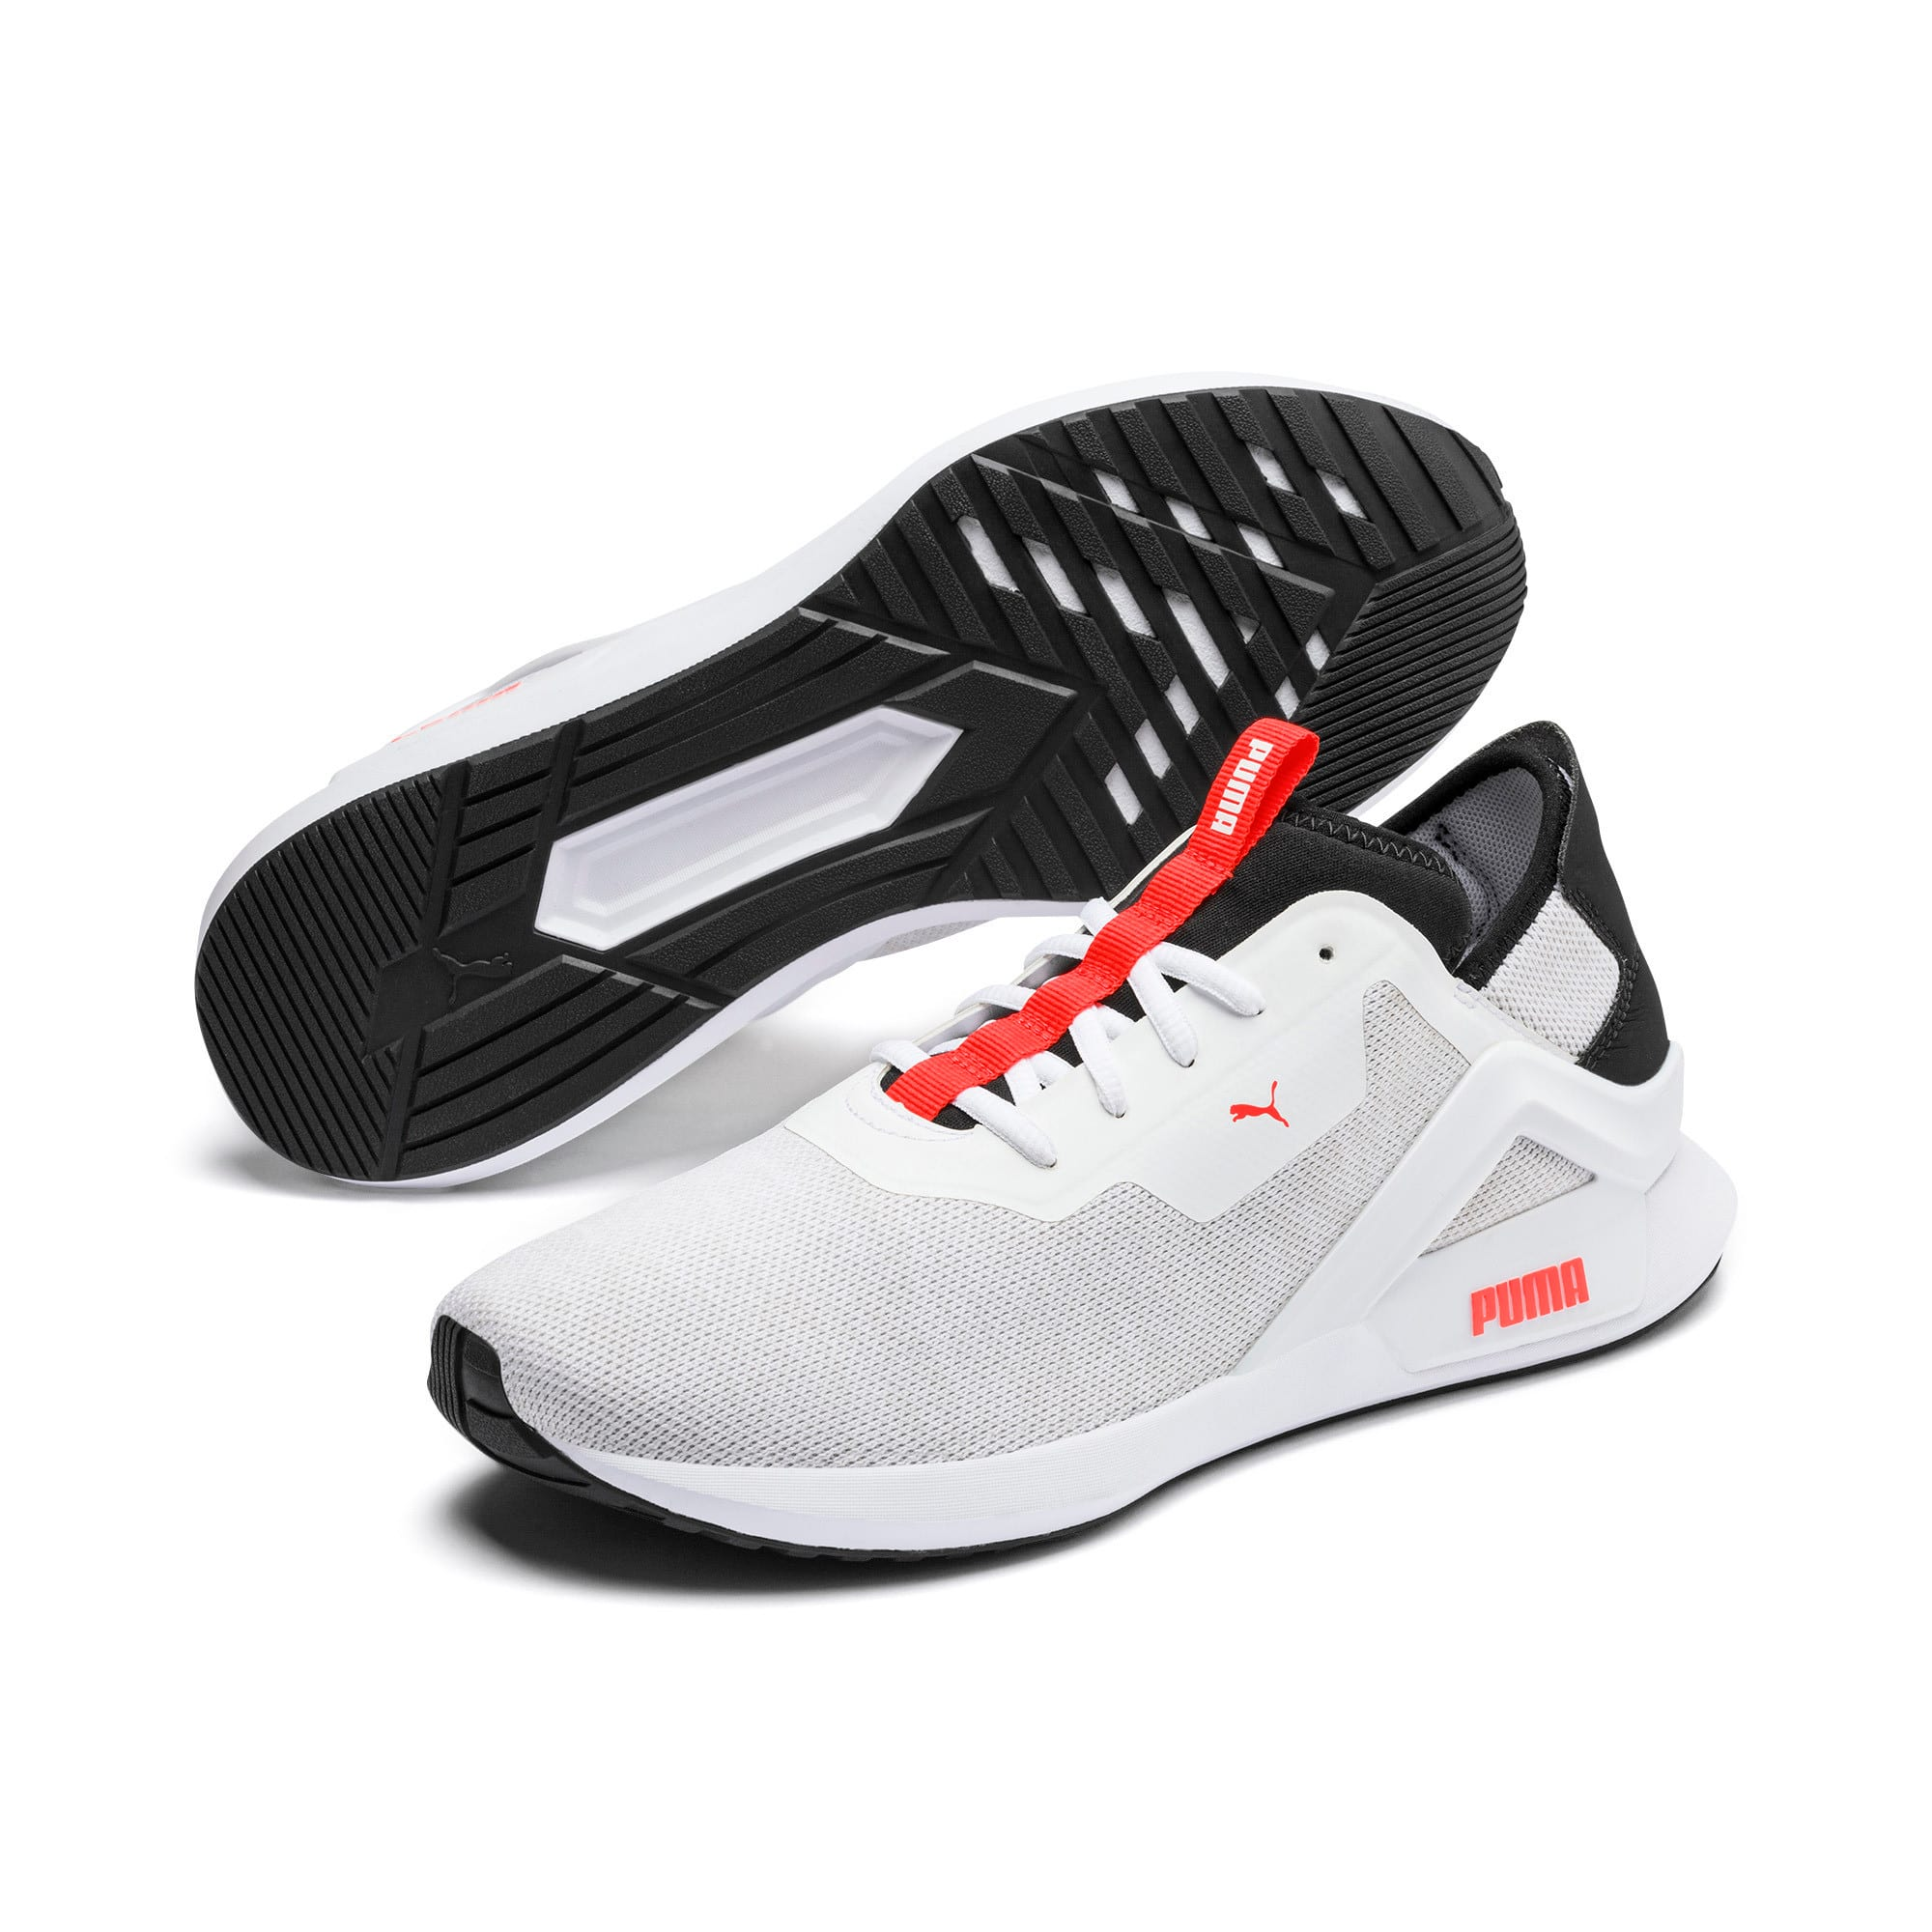 Thumbnail 3 of Rogue X Knit Men's Trainers, White-Black-Nrgy Red, medium